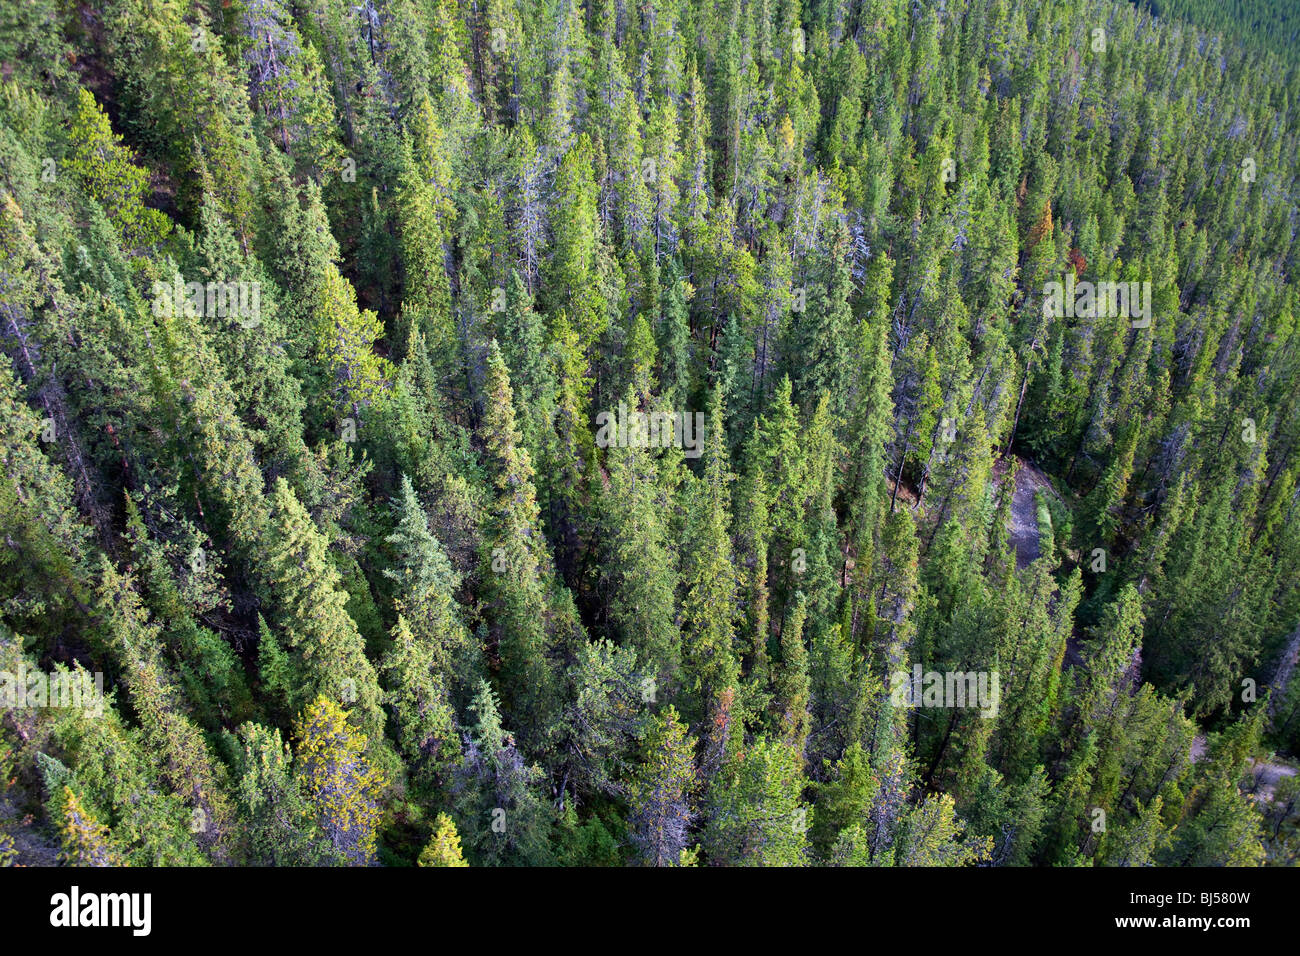 Aerial view of evergreen trees. Banff National Park, Alberta, Canada - Stock Image